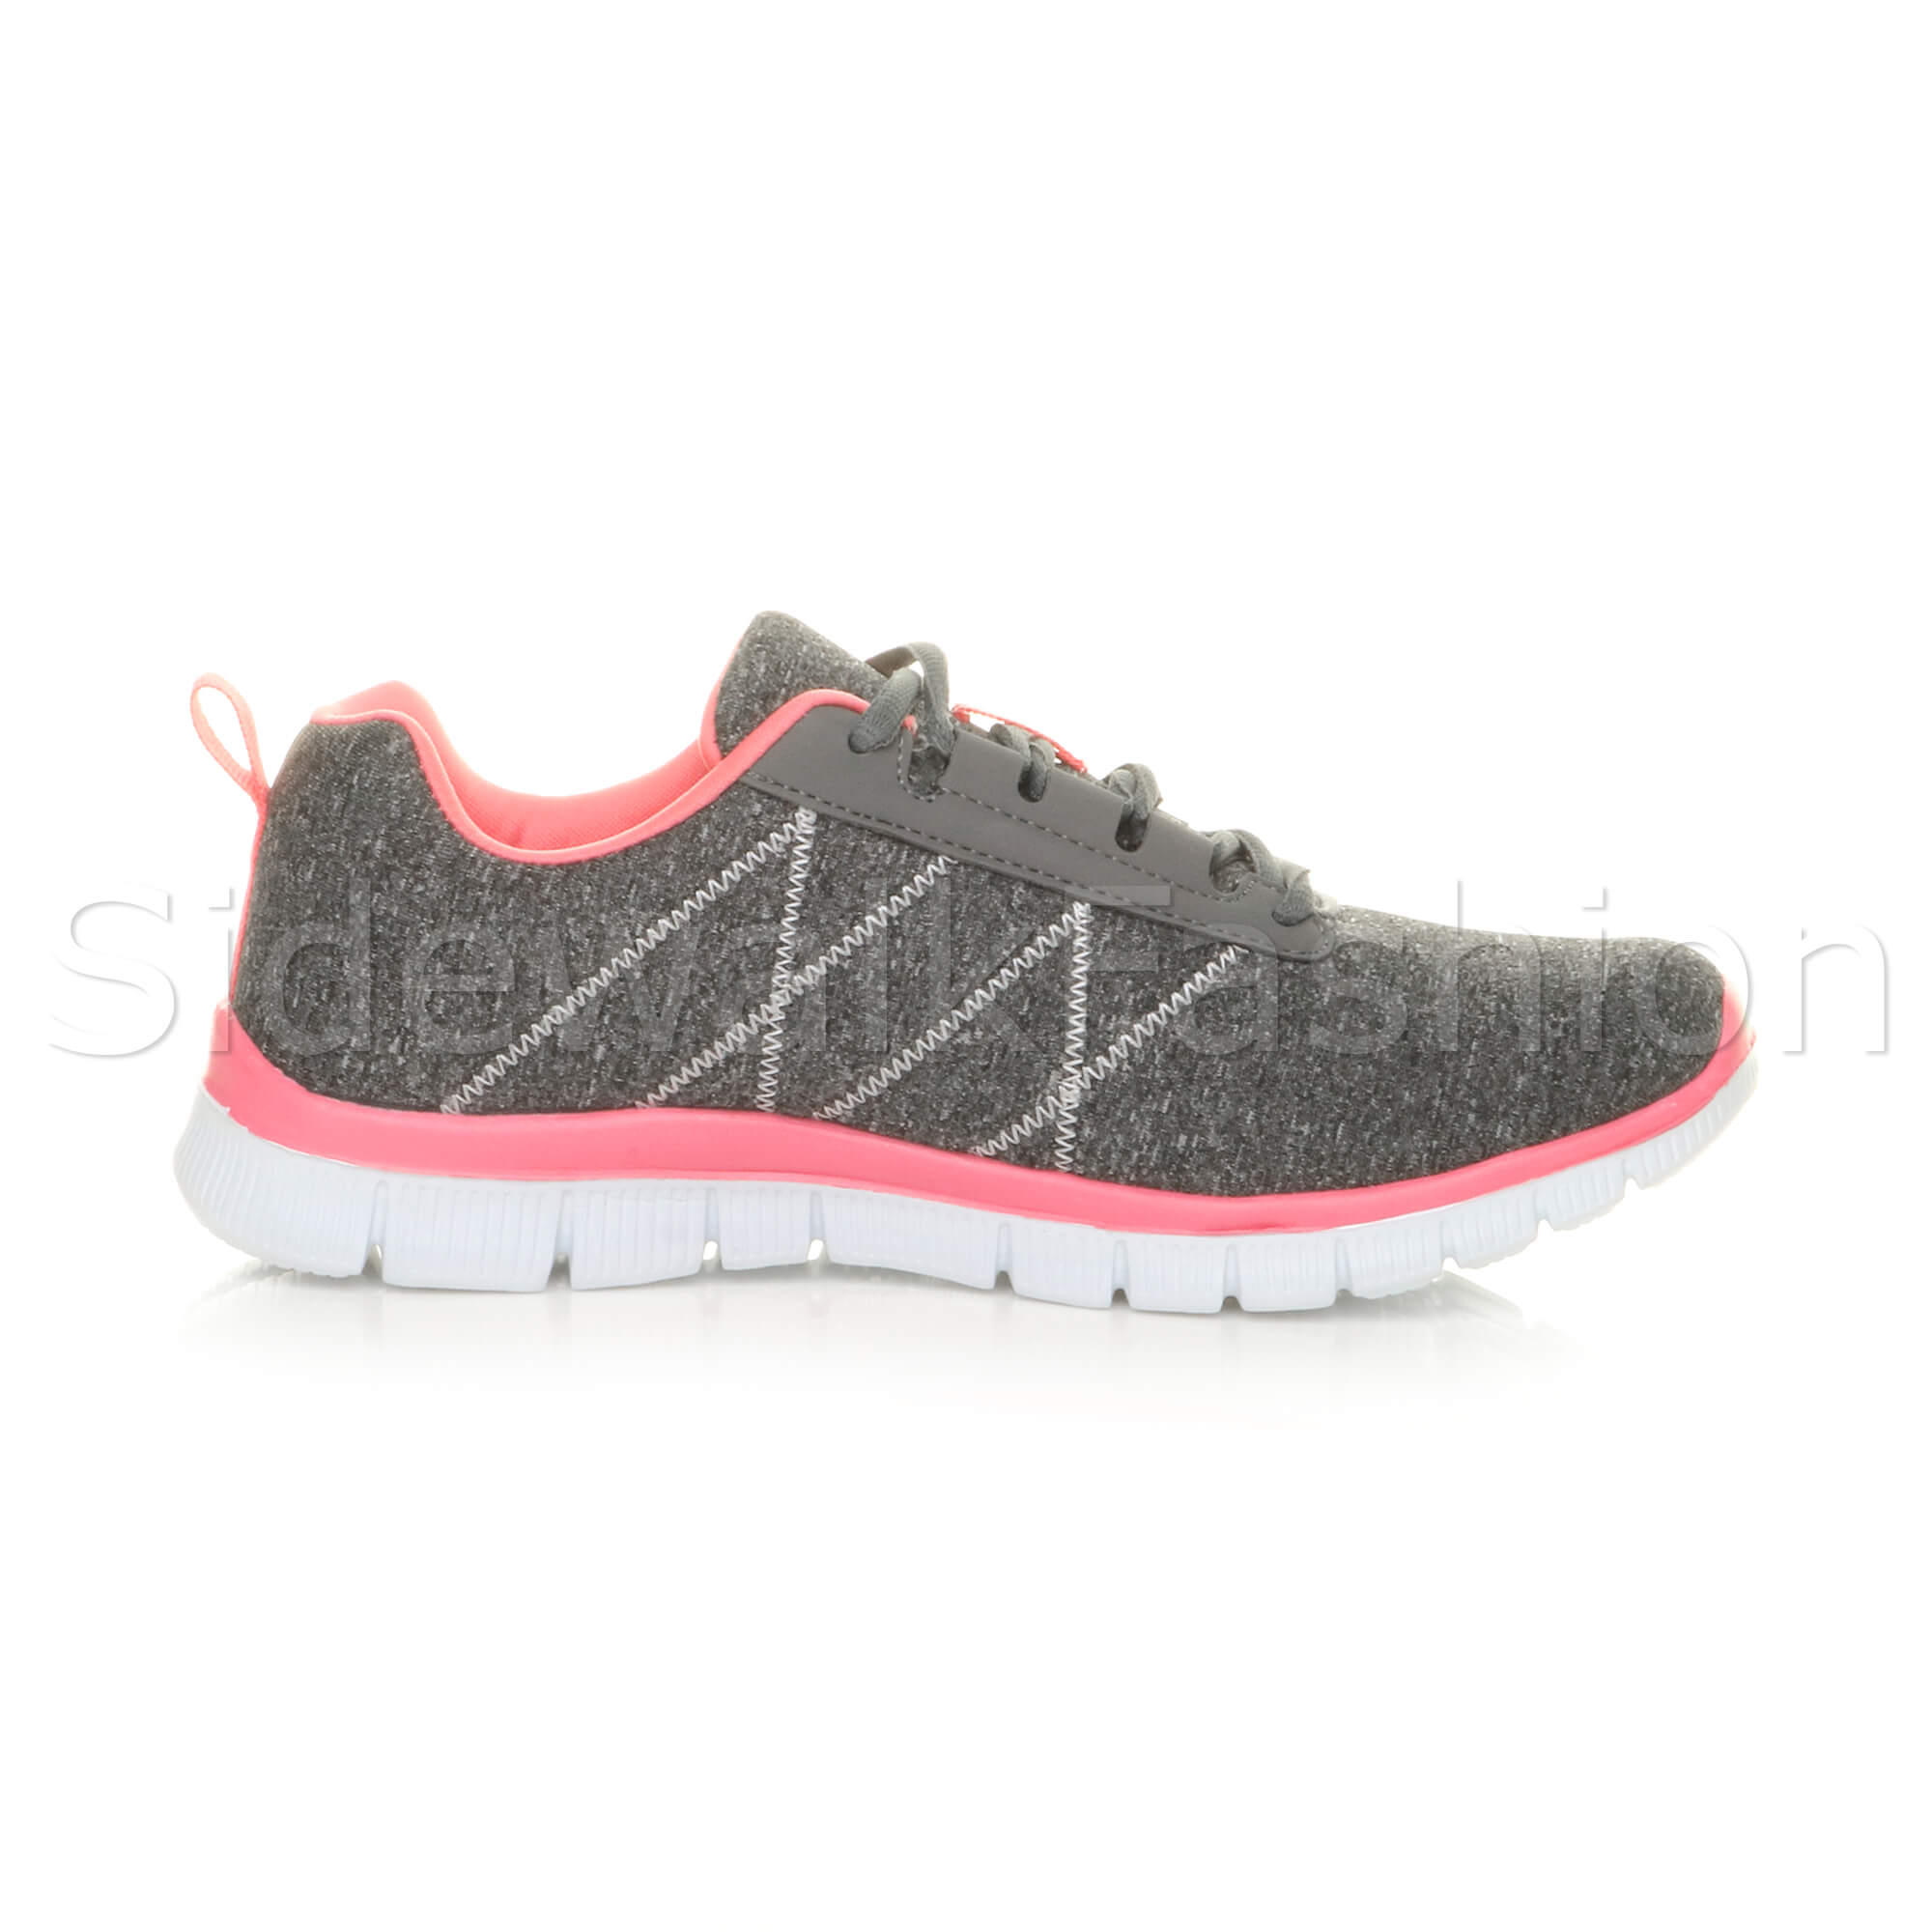 Womens-ladies-comfort-memory-foam-lace-up-trainers-activewear-sneakers-gym-shoes thumbnail 52